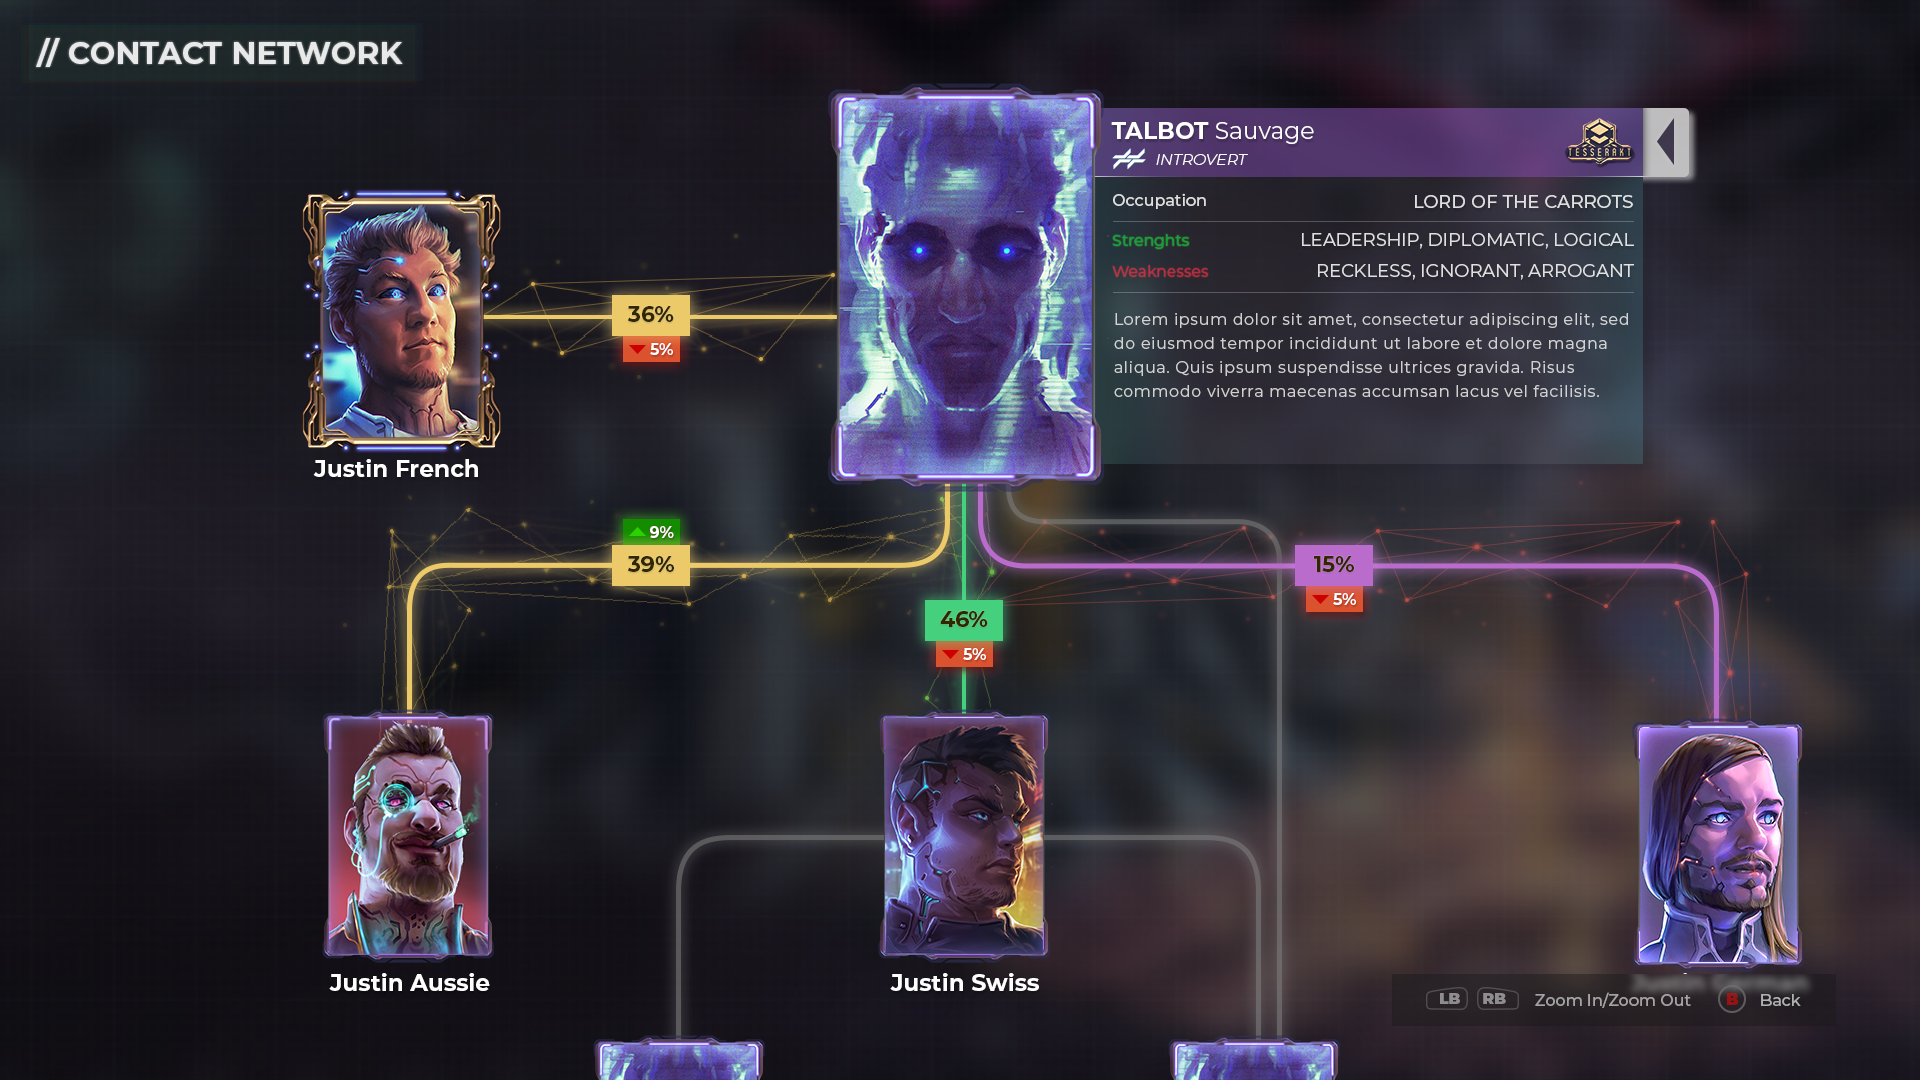 Building relationships with the characters in NeuroSlicers will give you access to the rest of their network.